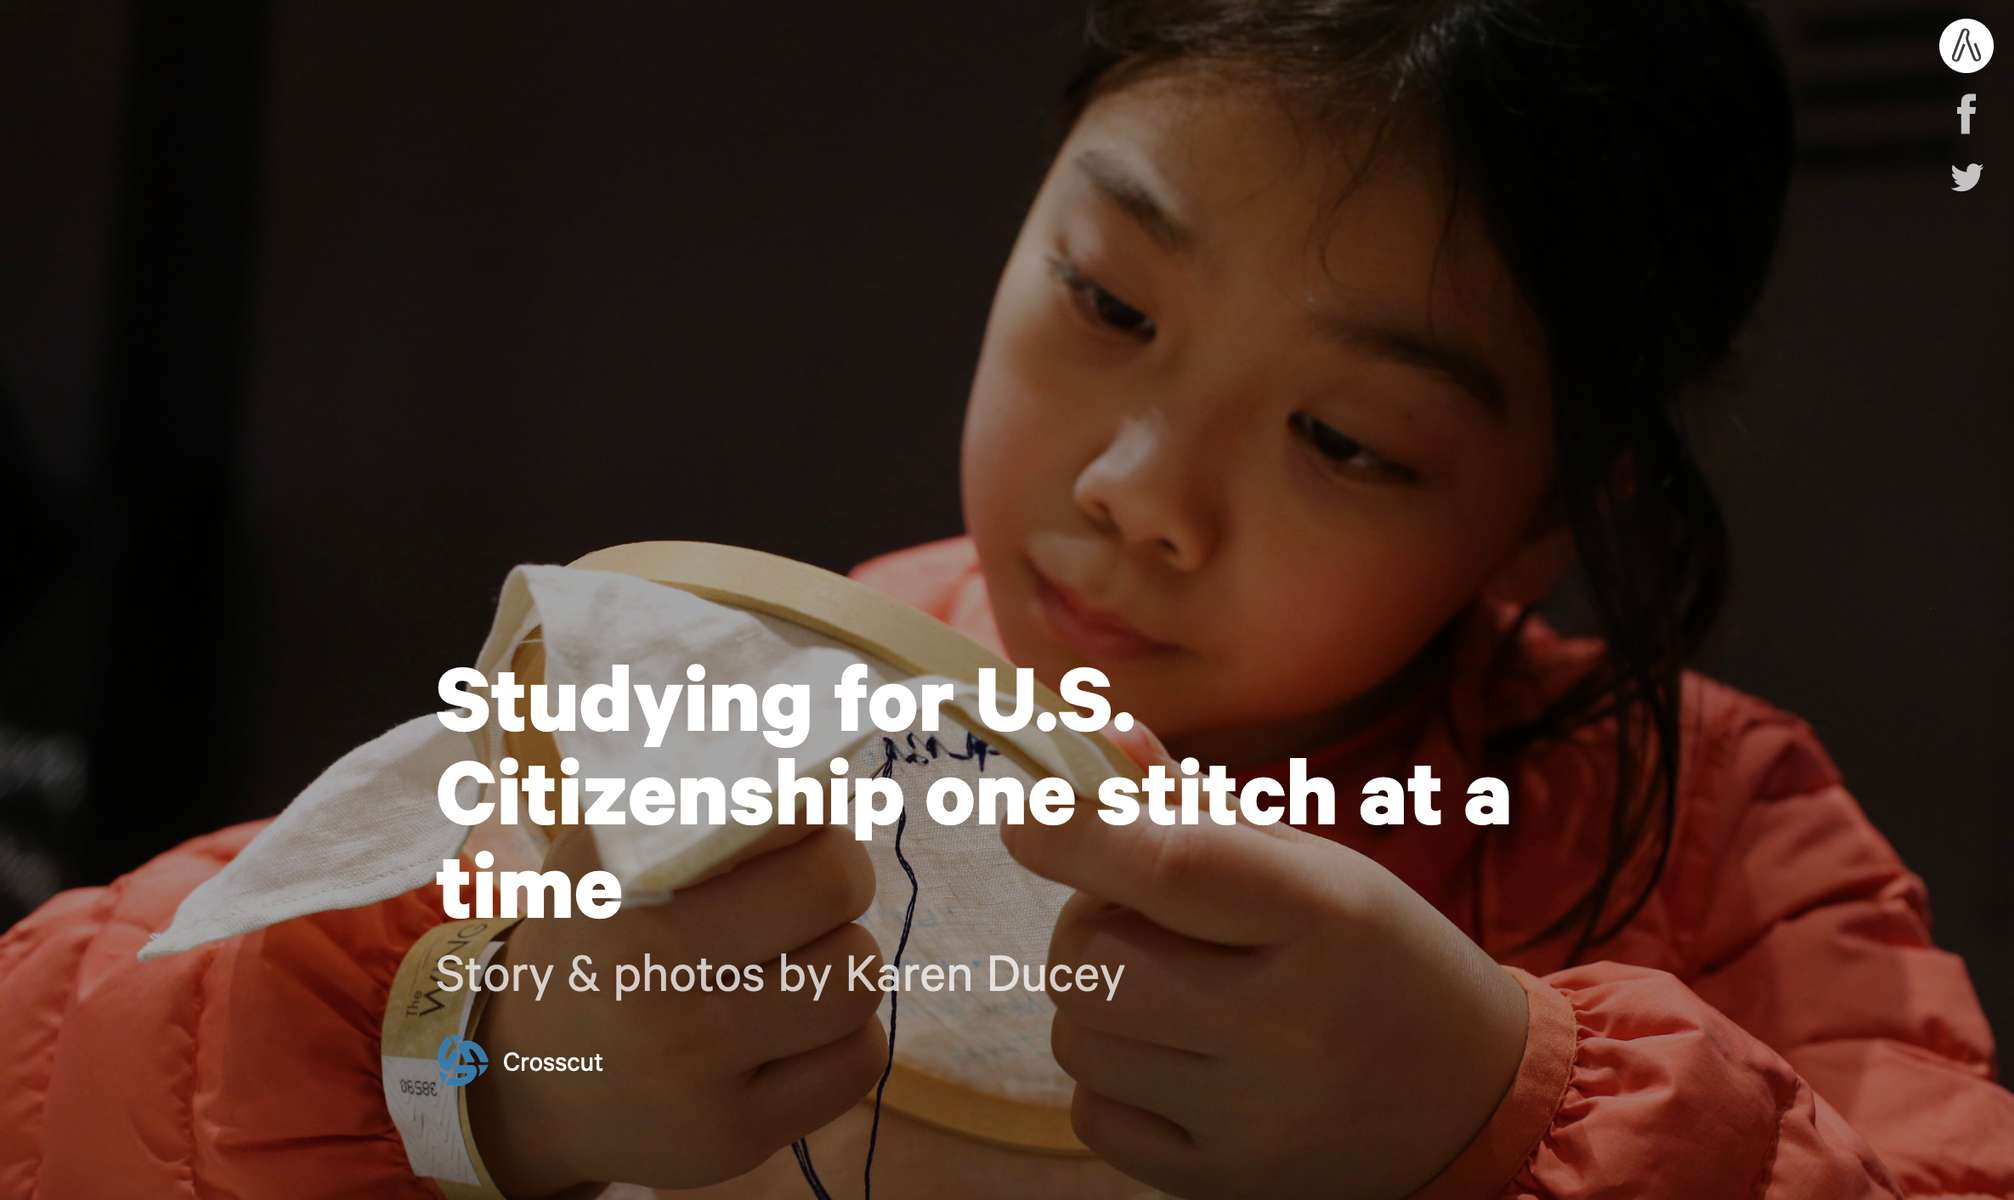 Studying for U.S. Citizenship one stitch at a time, story and photos published on Crosscut.com